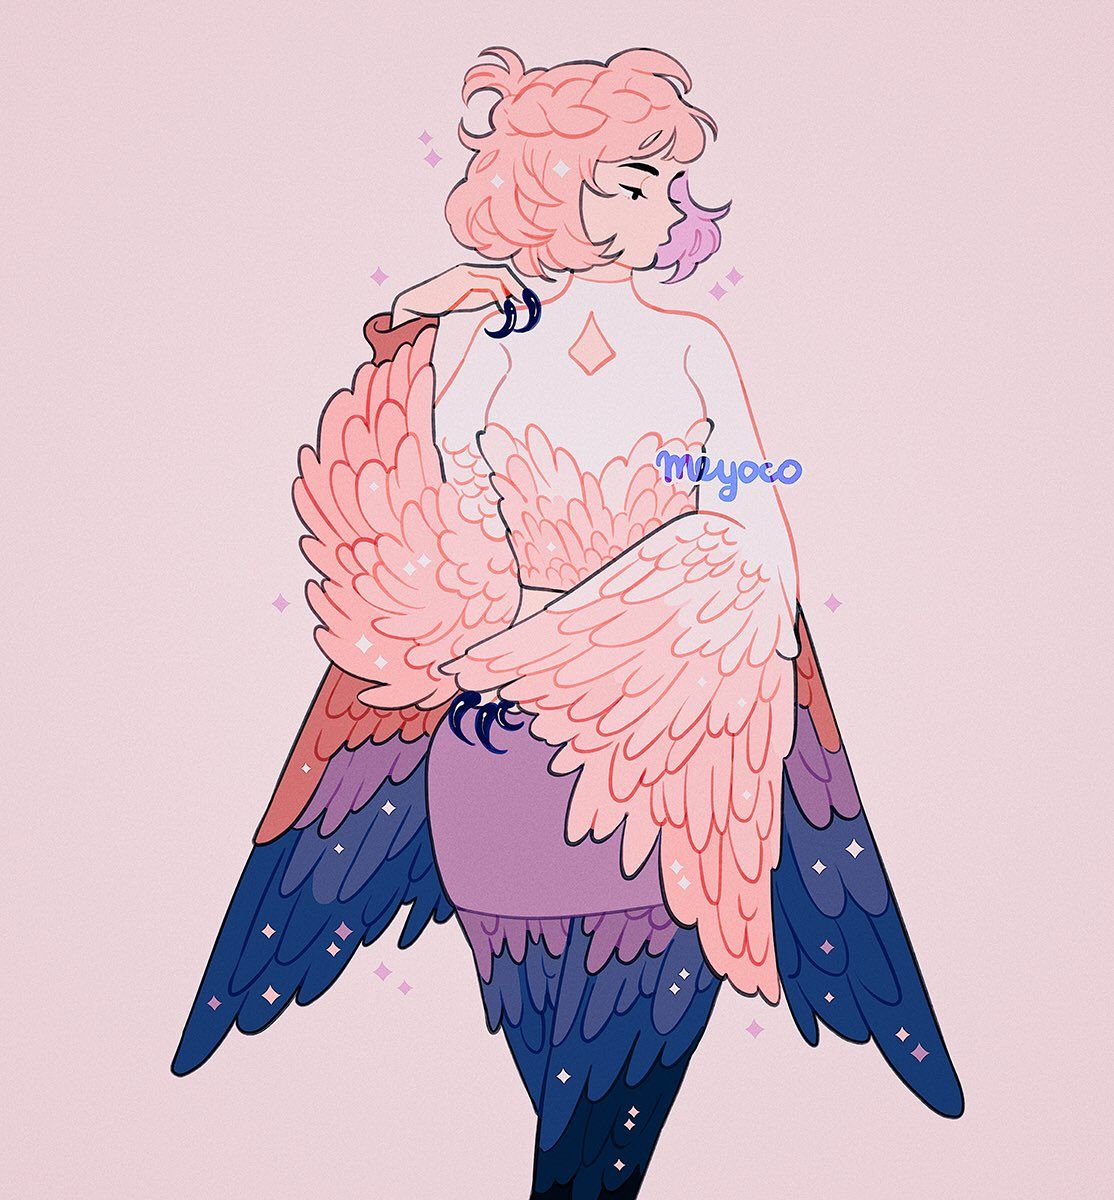 """meyo 🌸 is part of Meyo What Does Meyo Stand For The Free Dictionary - Bird lady (kind of)"""""""